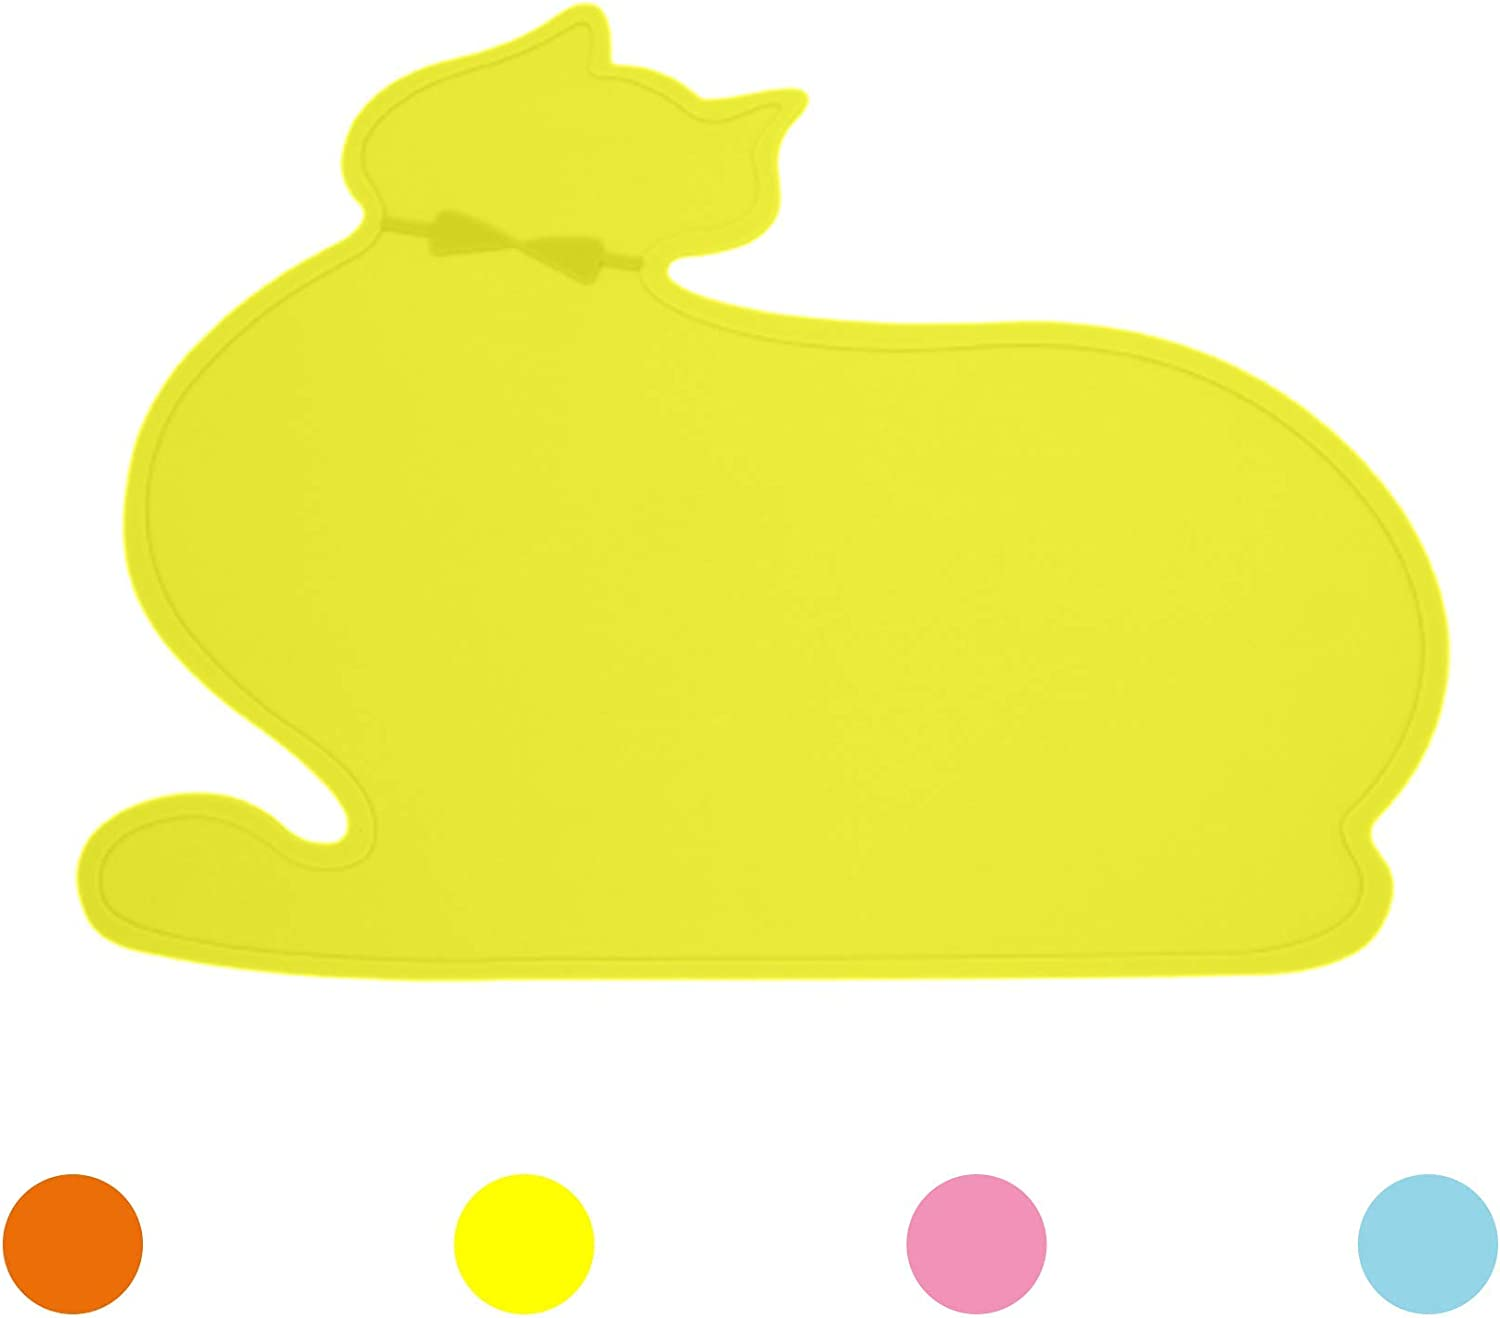 Ptlom Cat Placemat, Pet Food and Water Mat, Suitable for Large, Medium and Small Cats, Prevent Water and Food from Spilling, Silicone